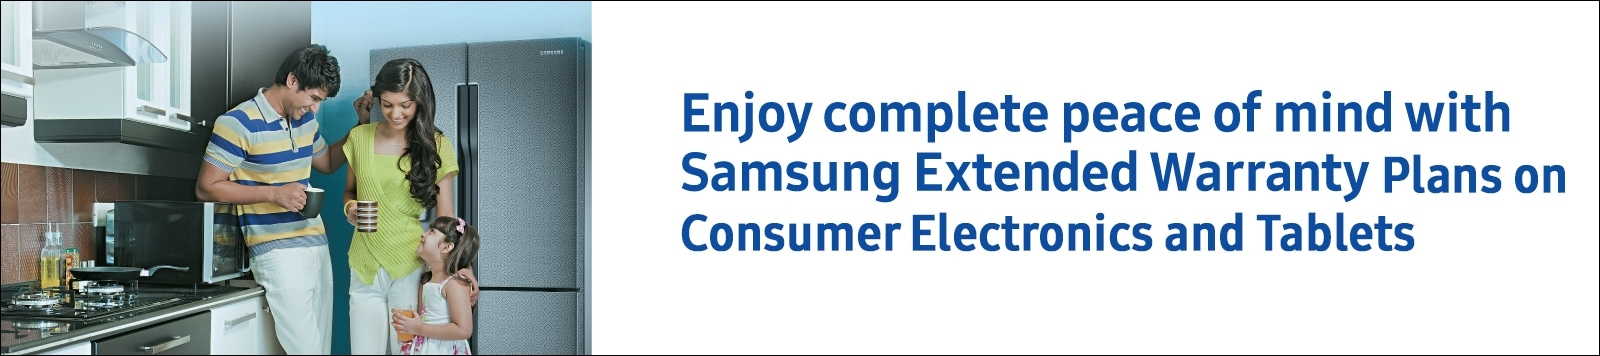 Extended Warranty for Home Appliances